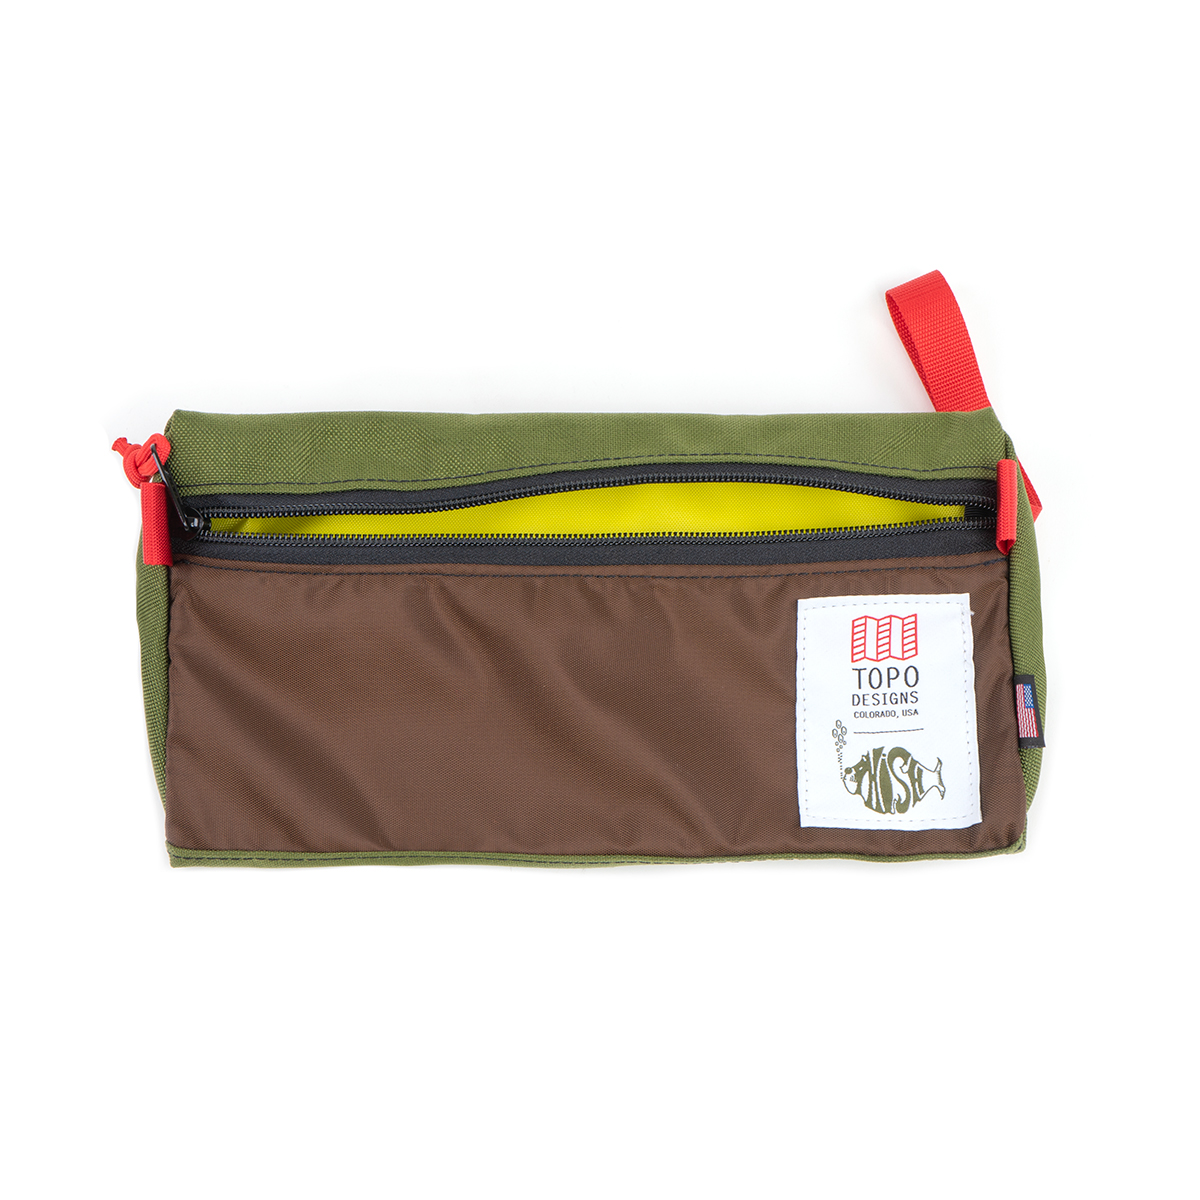 Phish x Topo Designs Dopp Kit